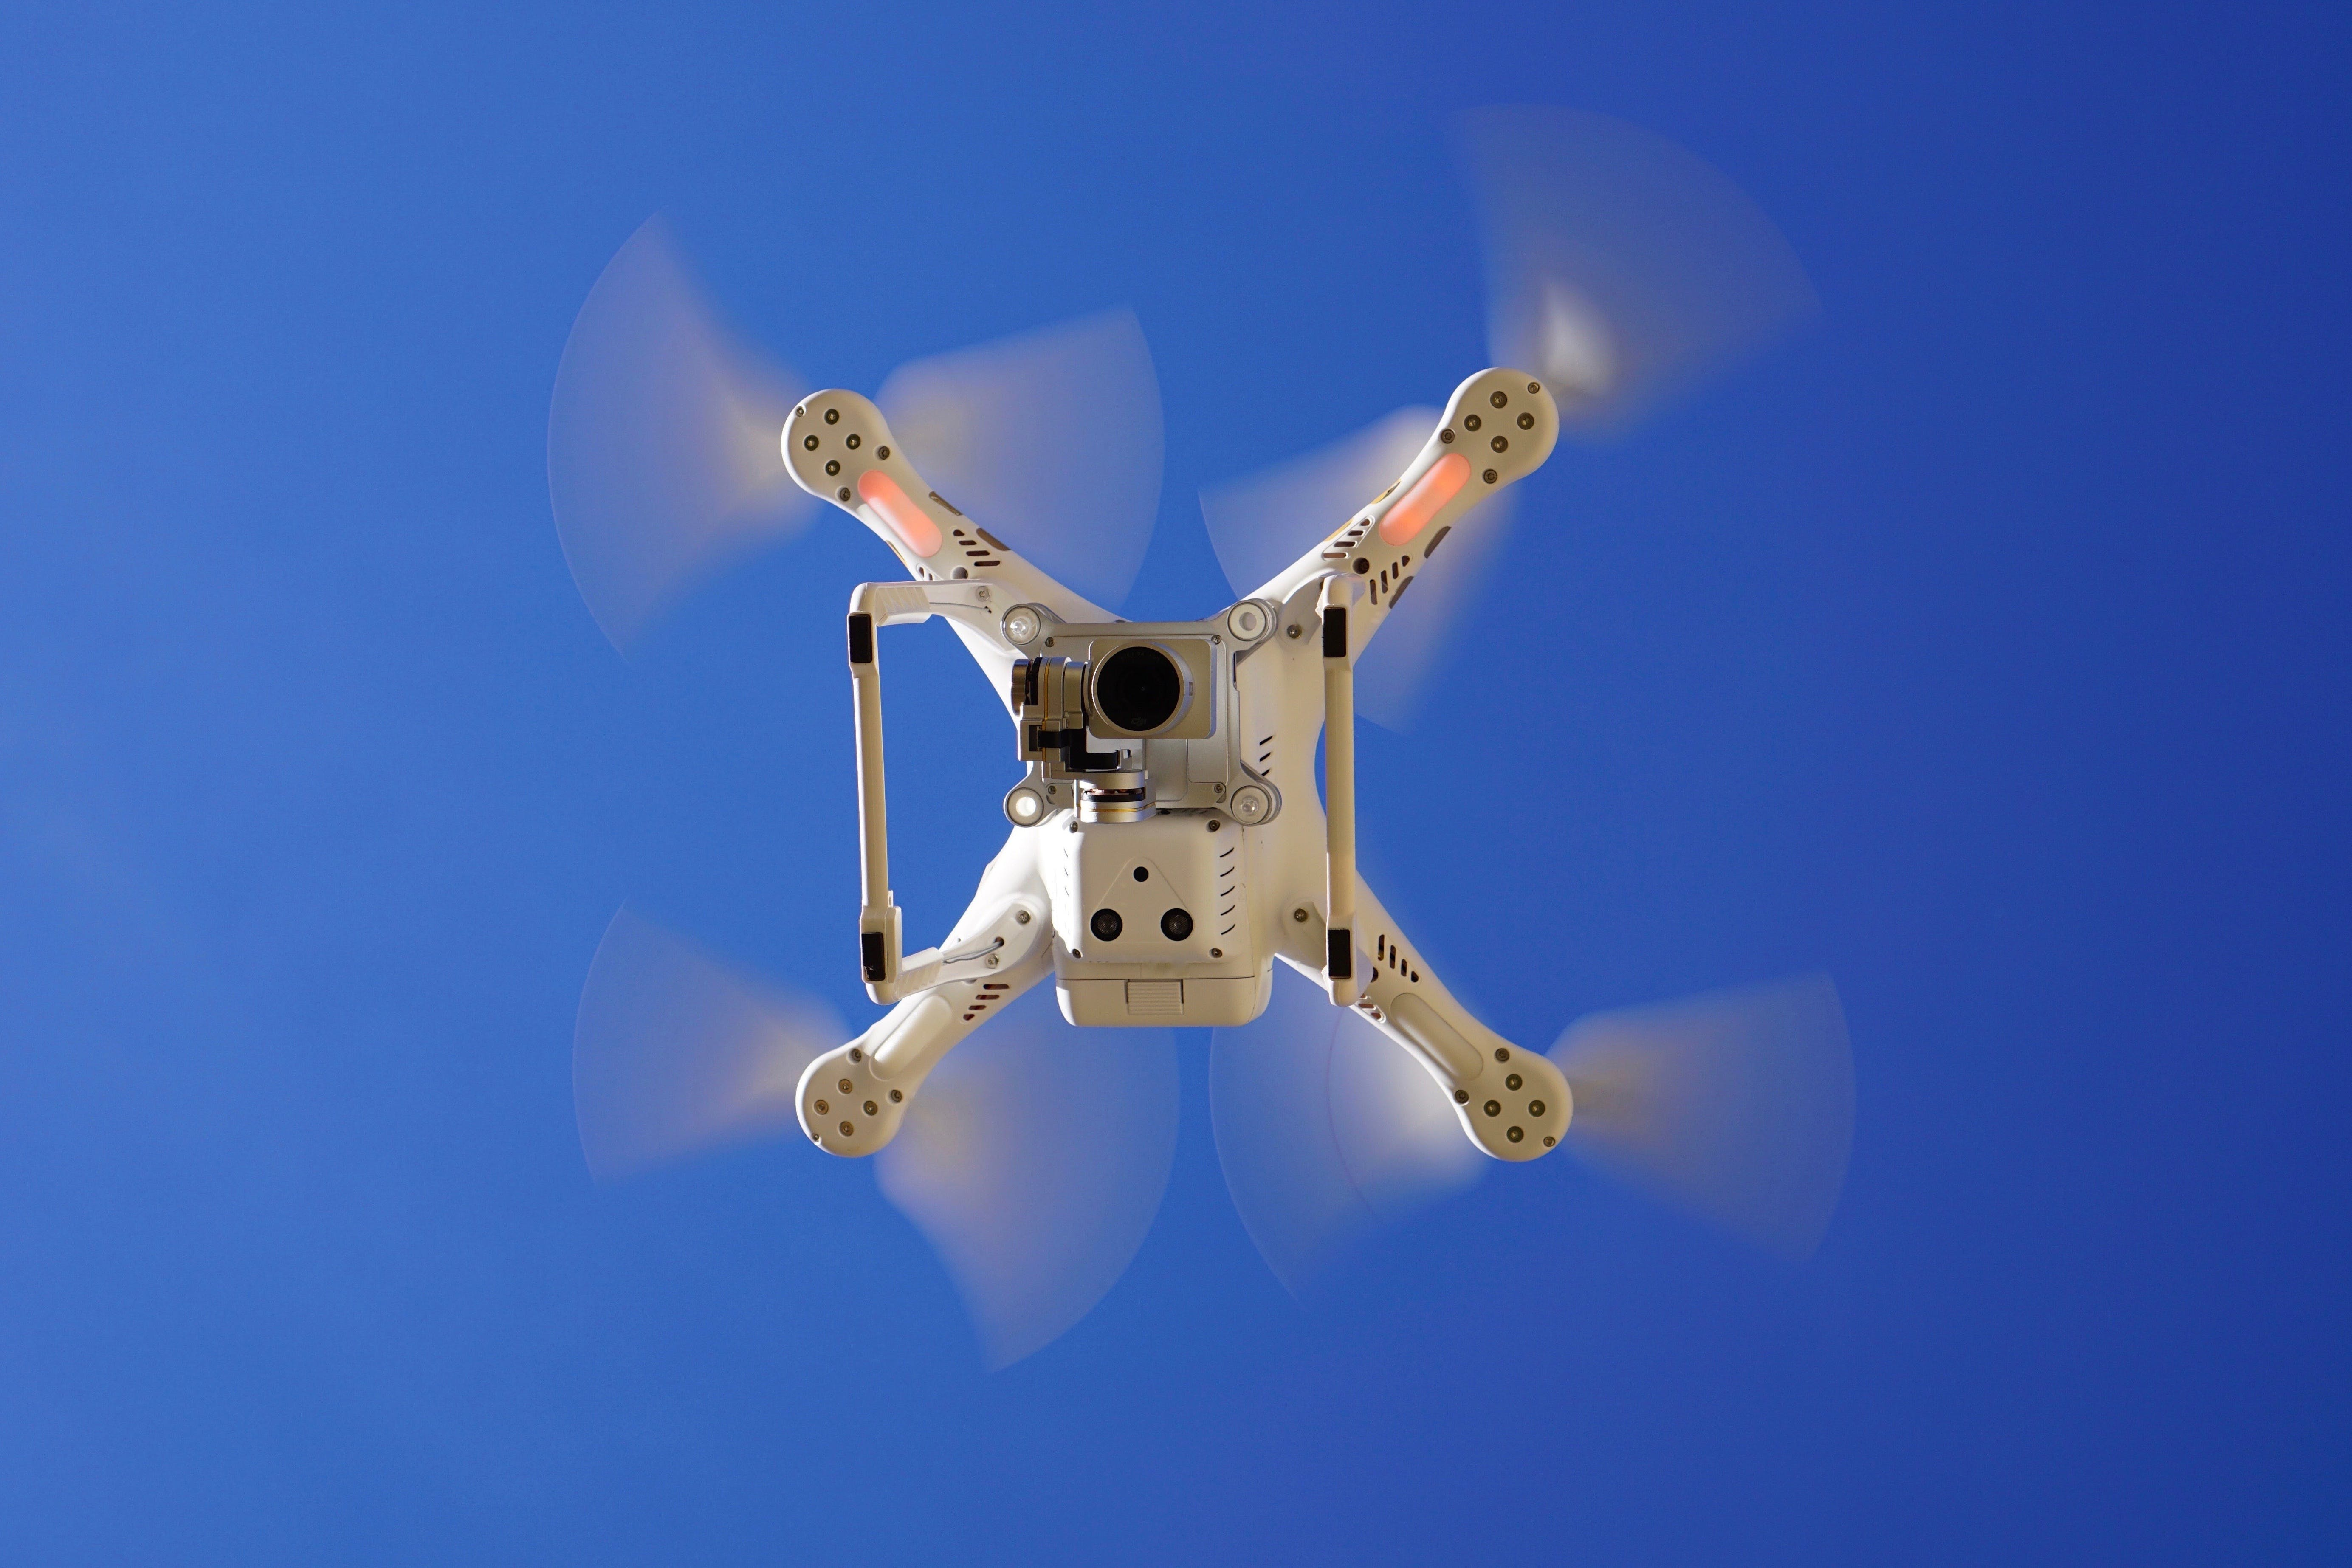 Low Angle View Photography of Drone